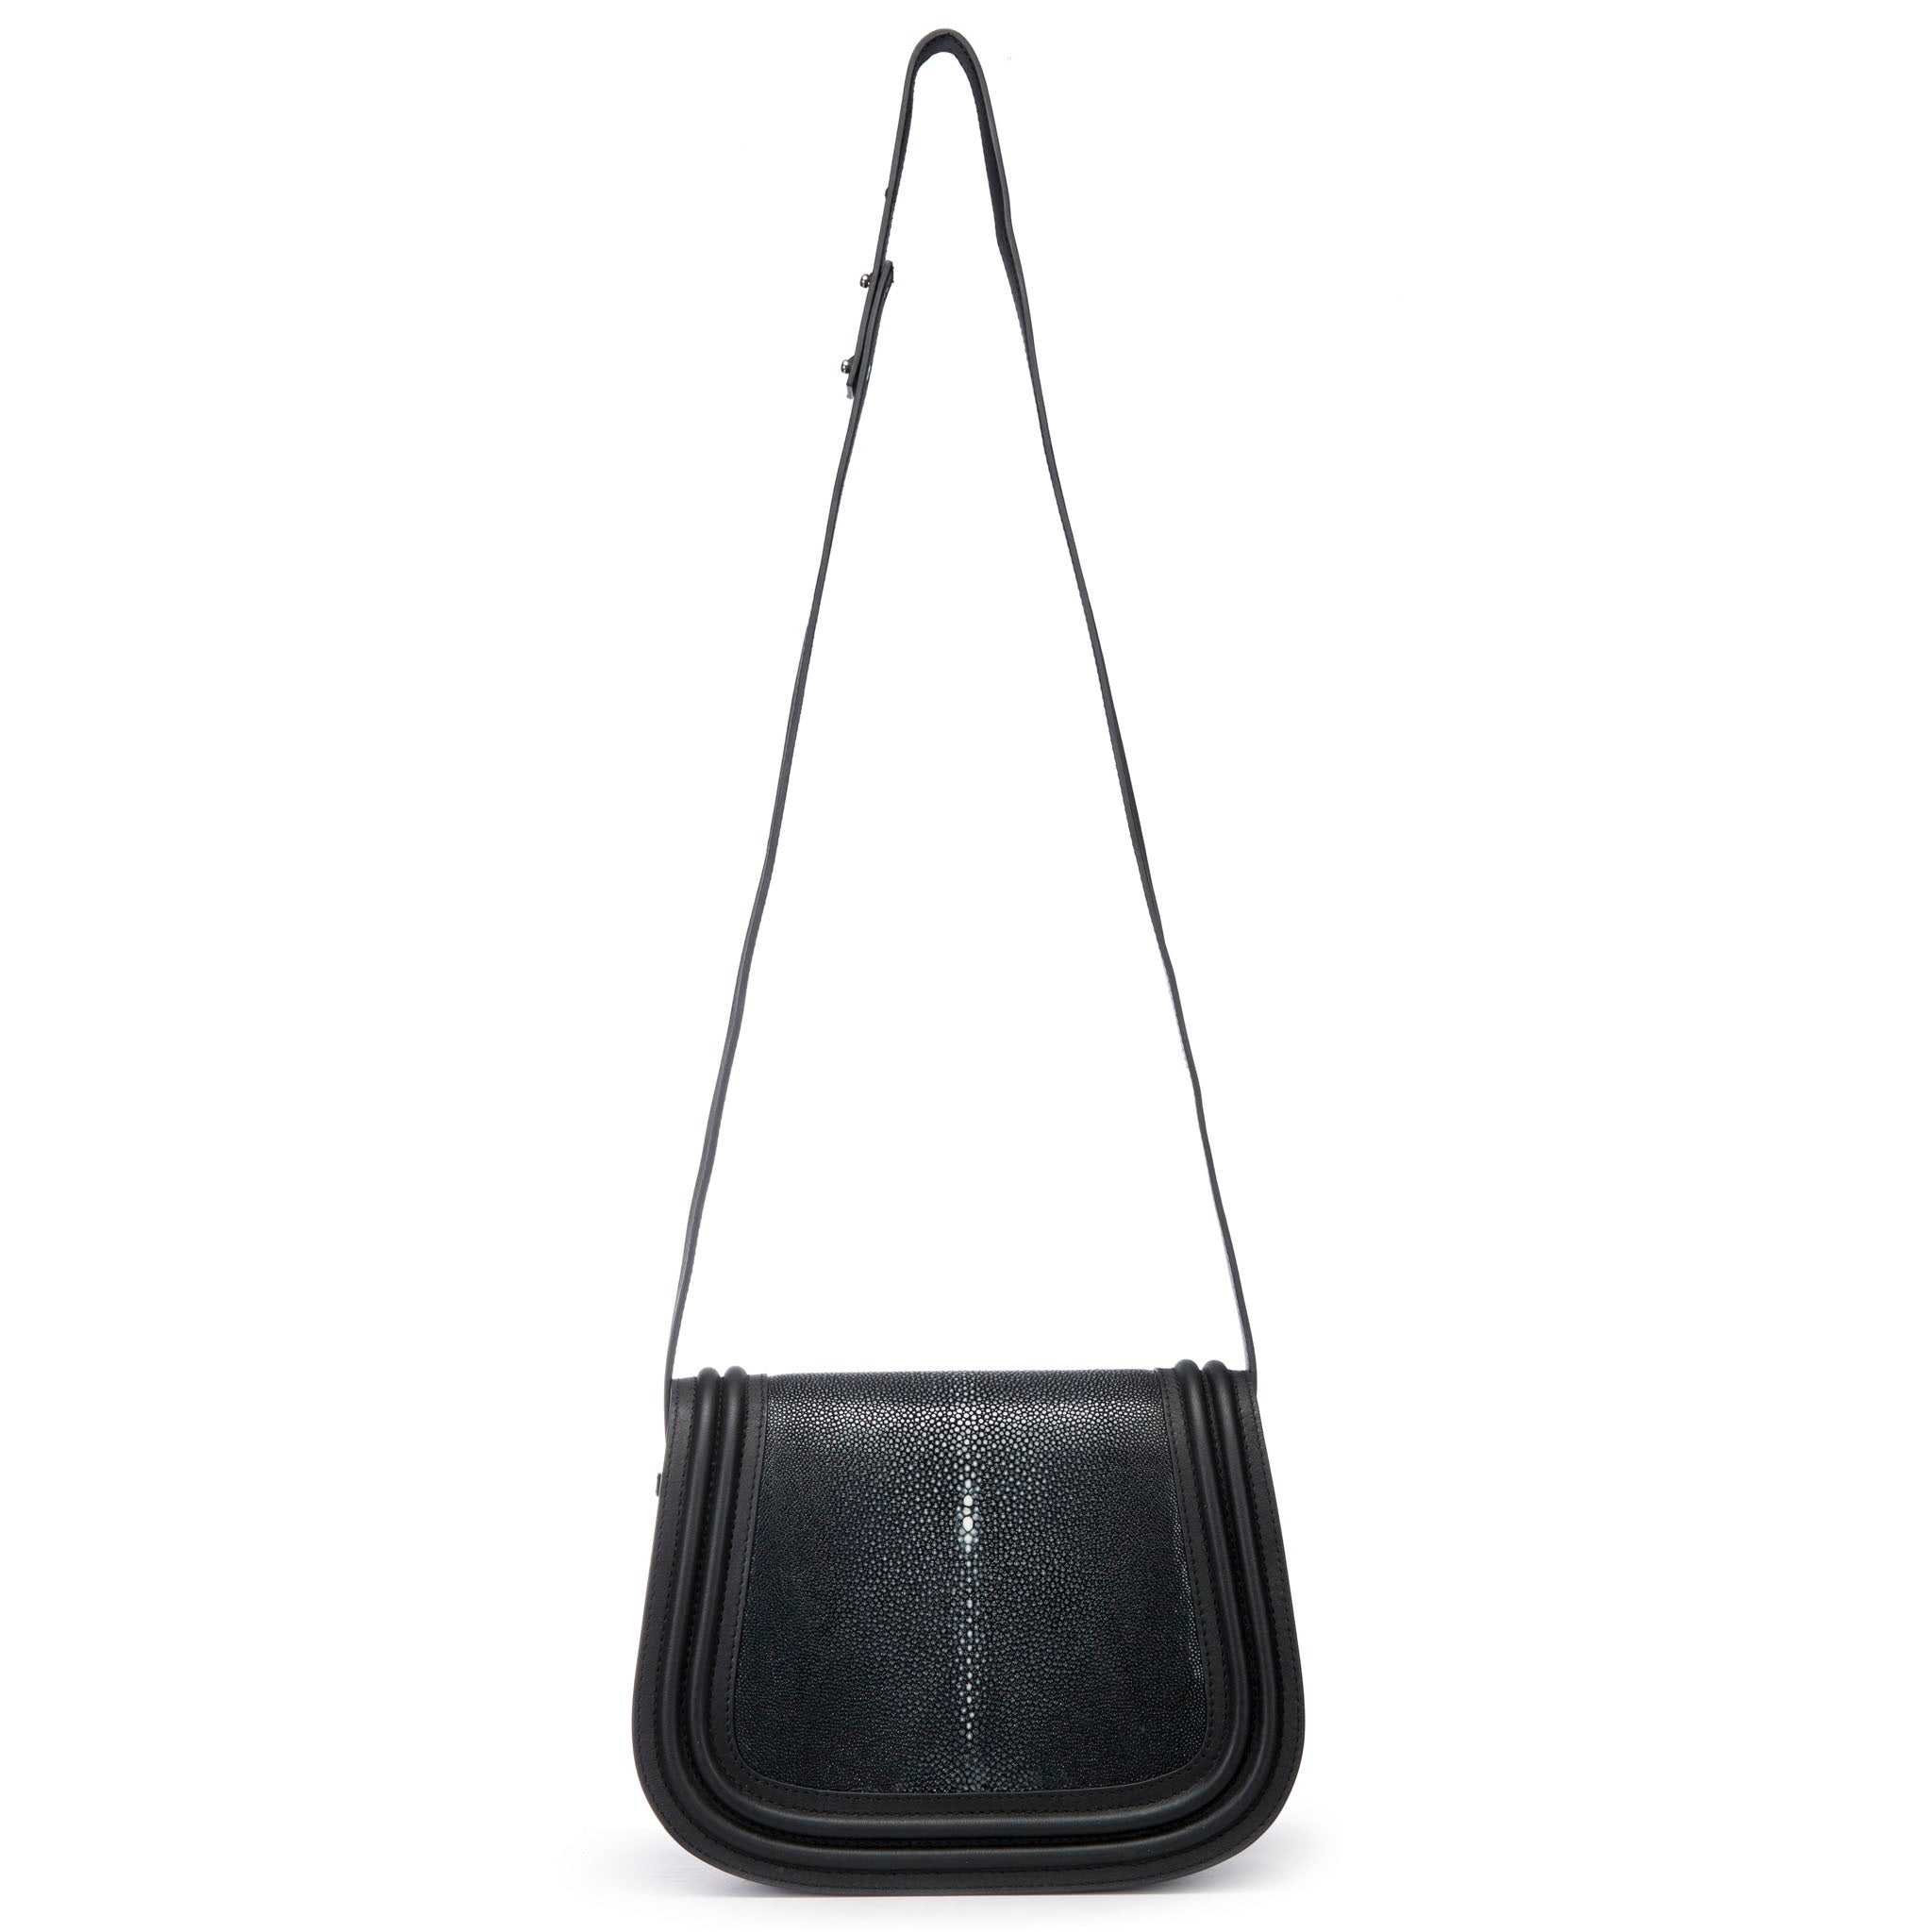 Black Corded Leather Framing Shagreen Shoulder Strap Panel Saddle Bag Front View Hazel - Vivo Direct